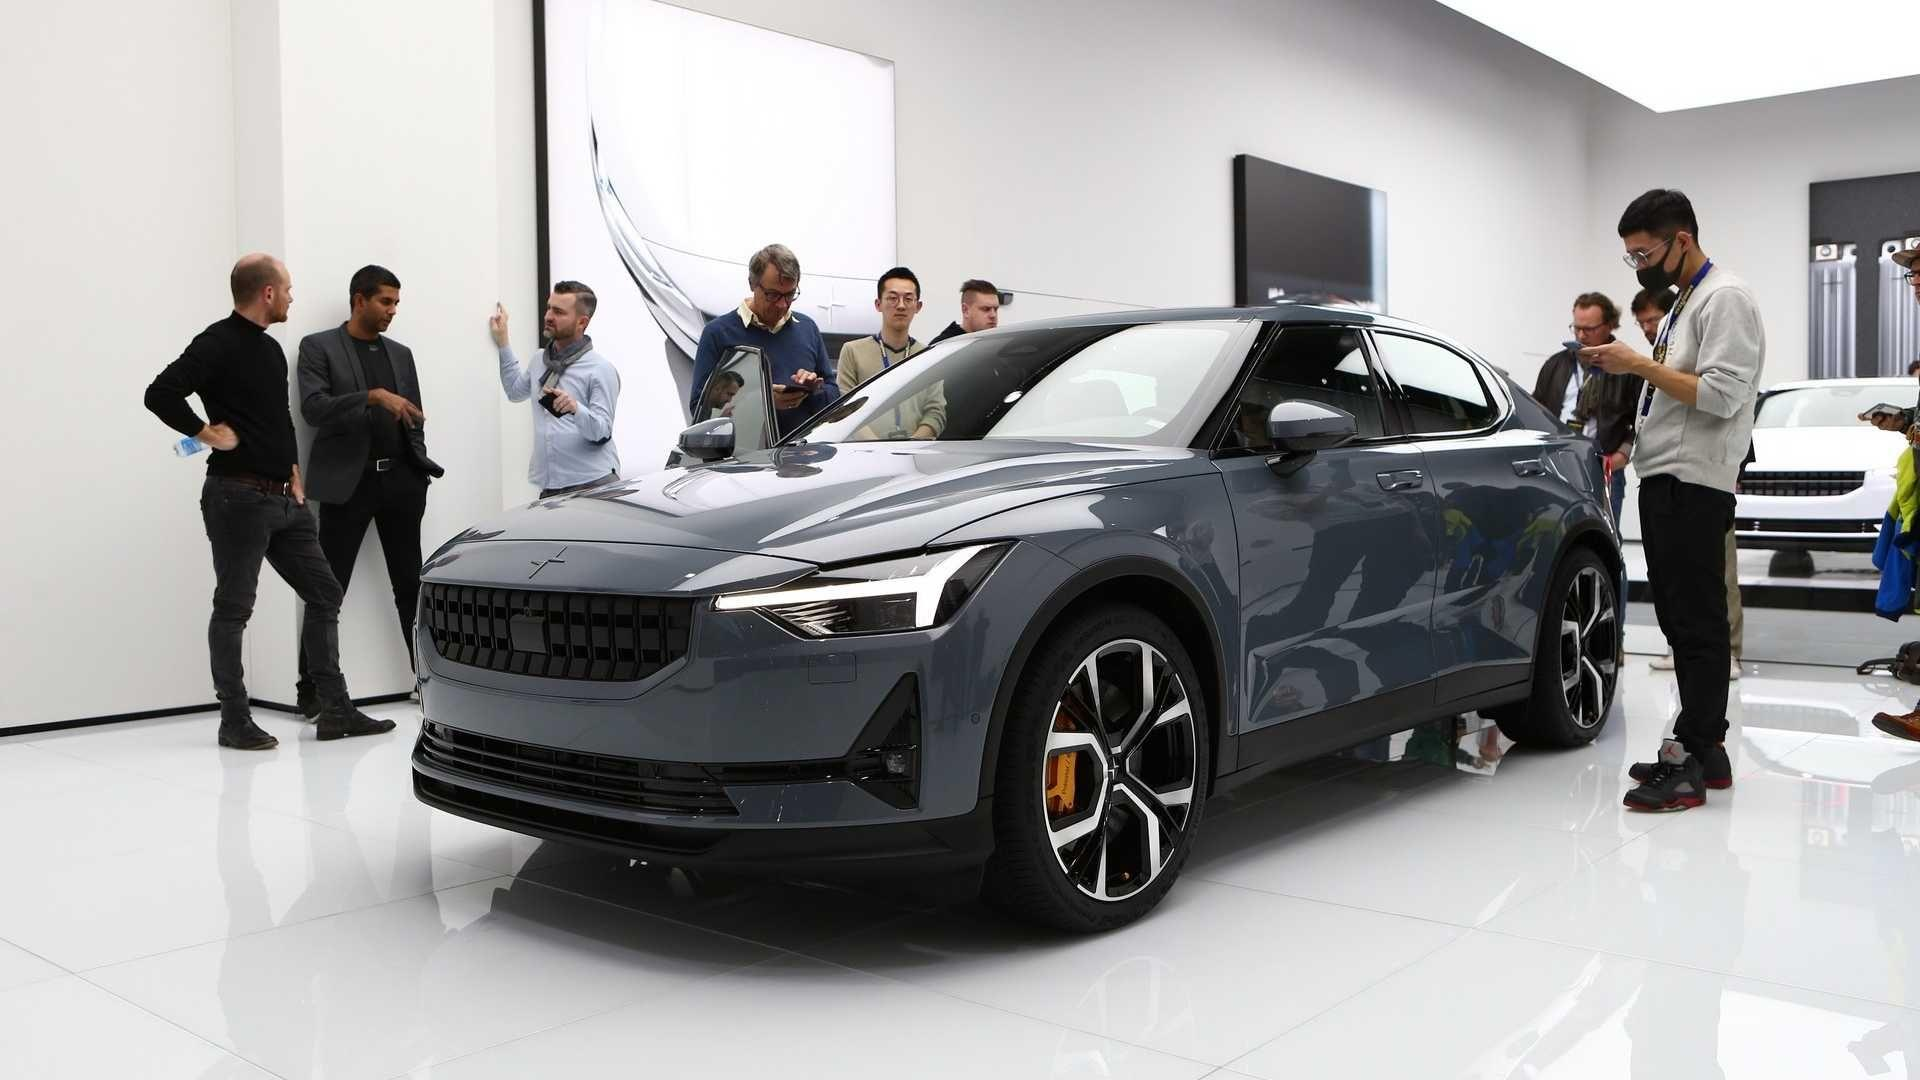 2020 Polestar 2: Live from the Geneva Motor Show